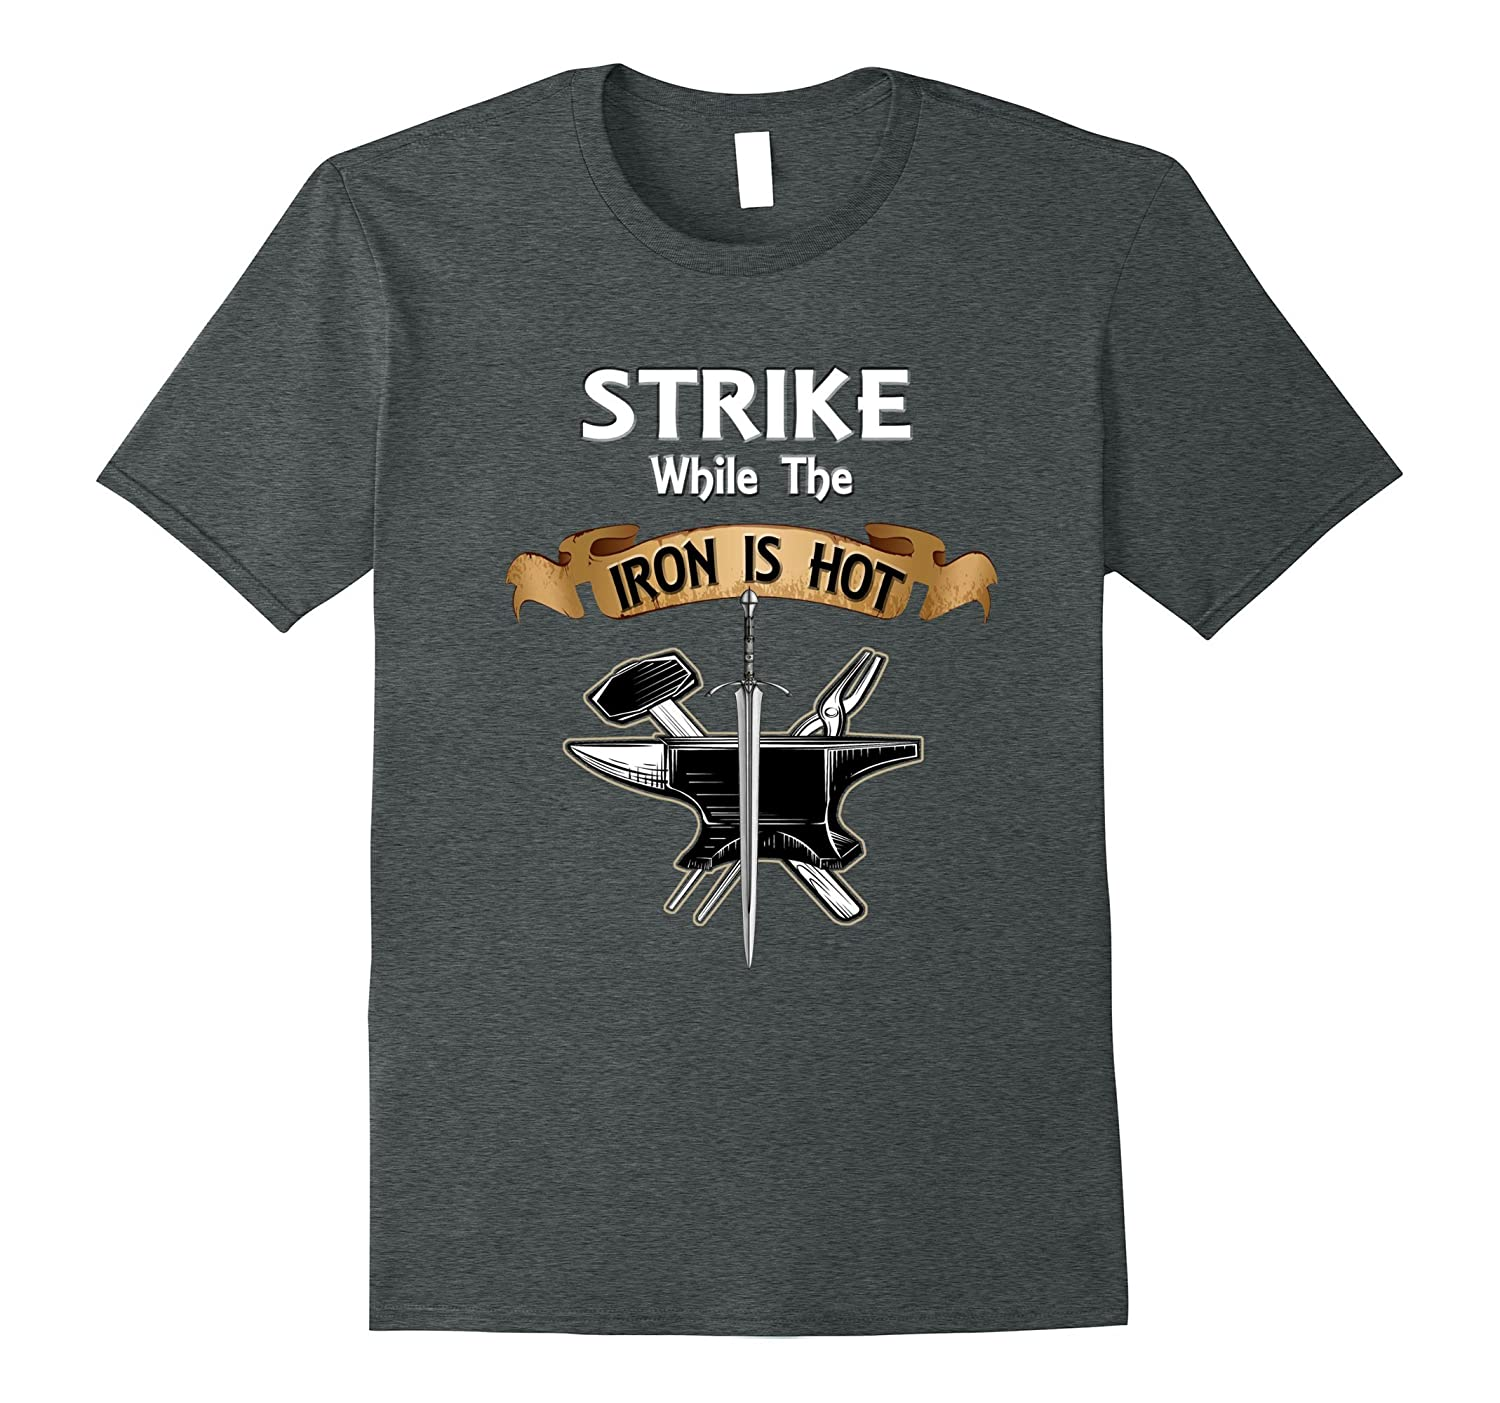 STRIKE While The IRON IS HOT-Vaci